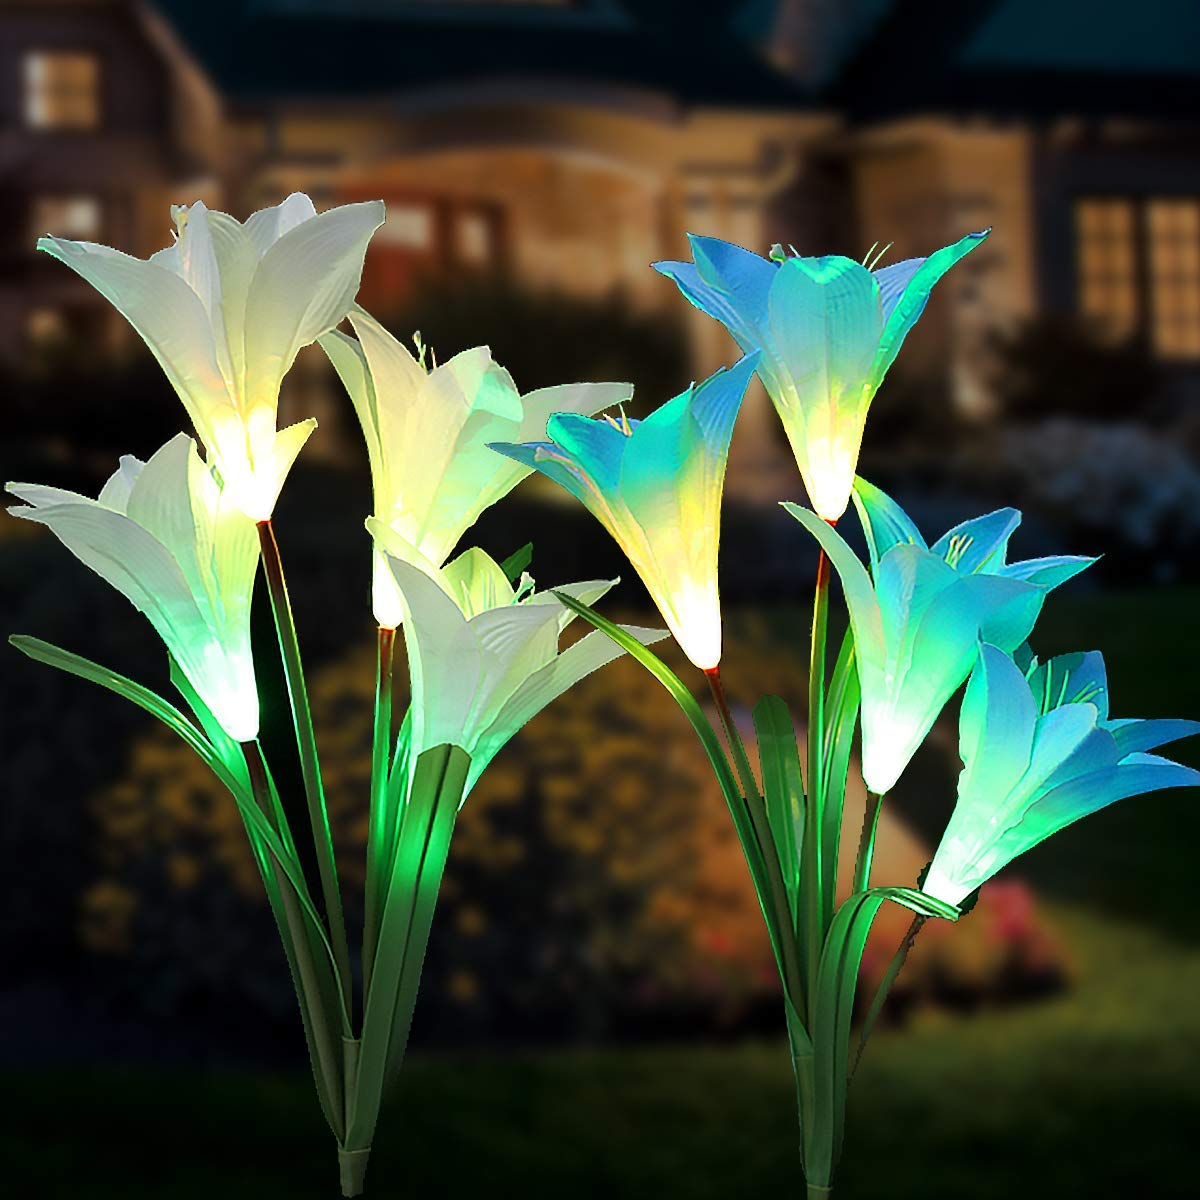 Tvird Outdoor Solar Garden Stake Lights,Solar Garden Lily Lights,2 Sets Solar Flowers with 8 Flowers,Multi-Colors Changing LED Decorative Lights Suit for Garden,Patio, Backyard(Blue and White)